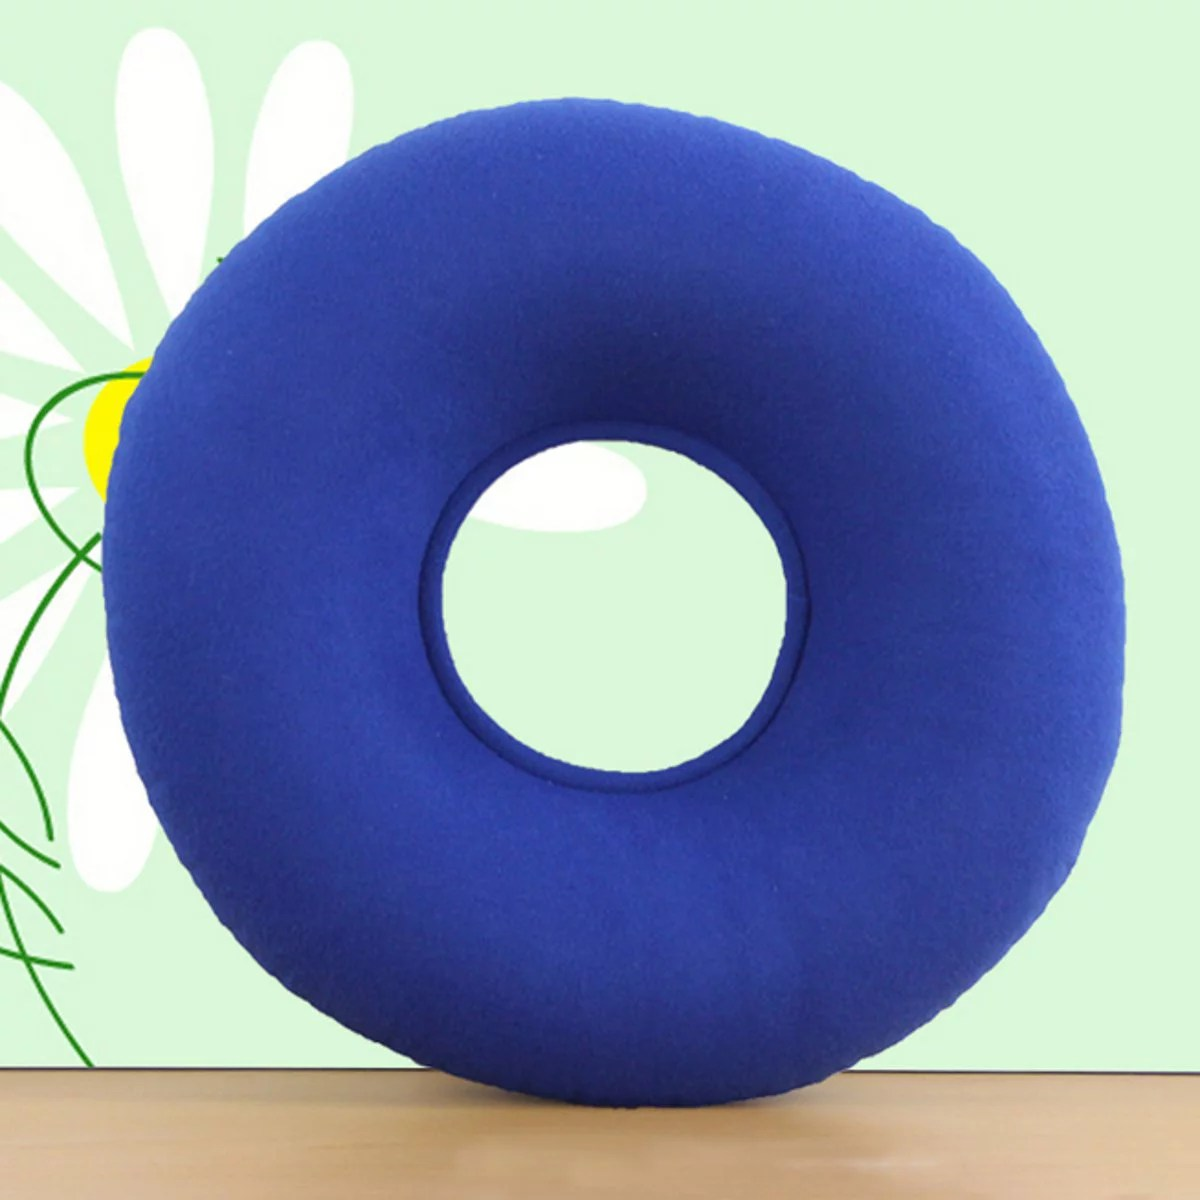 14 donut ring pillow medical home inflatable seat cushion foldable for tailbone pain relief hemorrhoid treatment bed sores lumbar